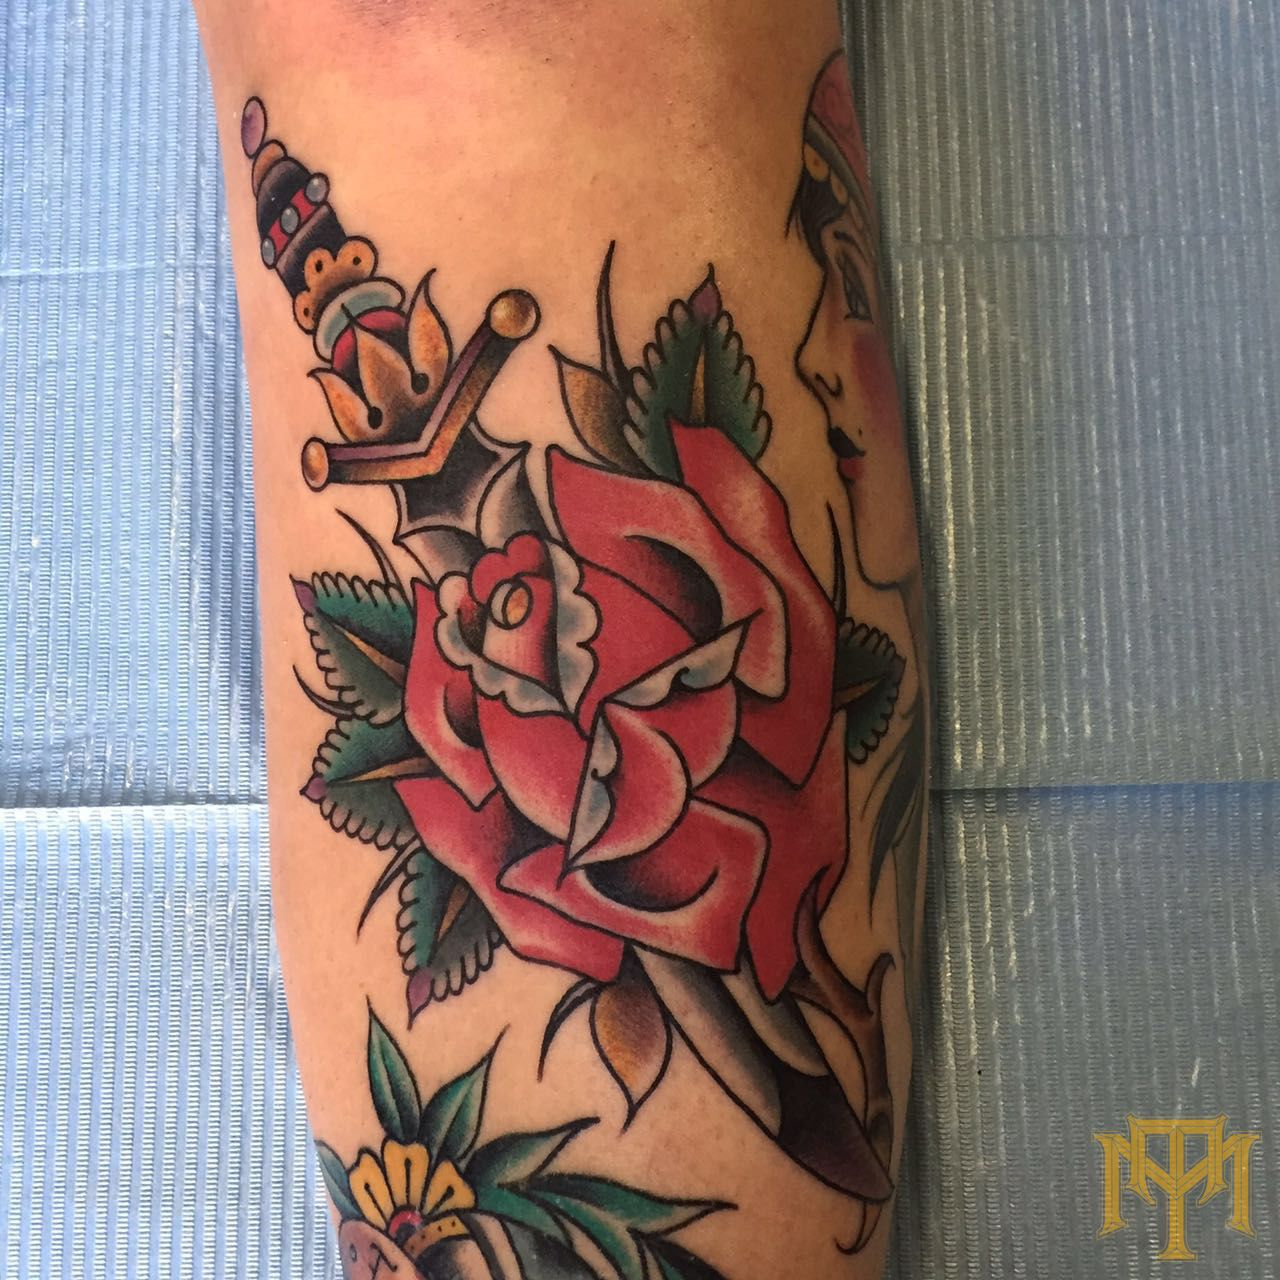 Rose Dagger tattoo by Luke Smith from TRADE MARK TATTOO Durban South Africa